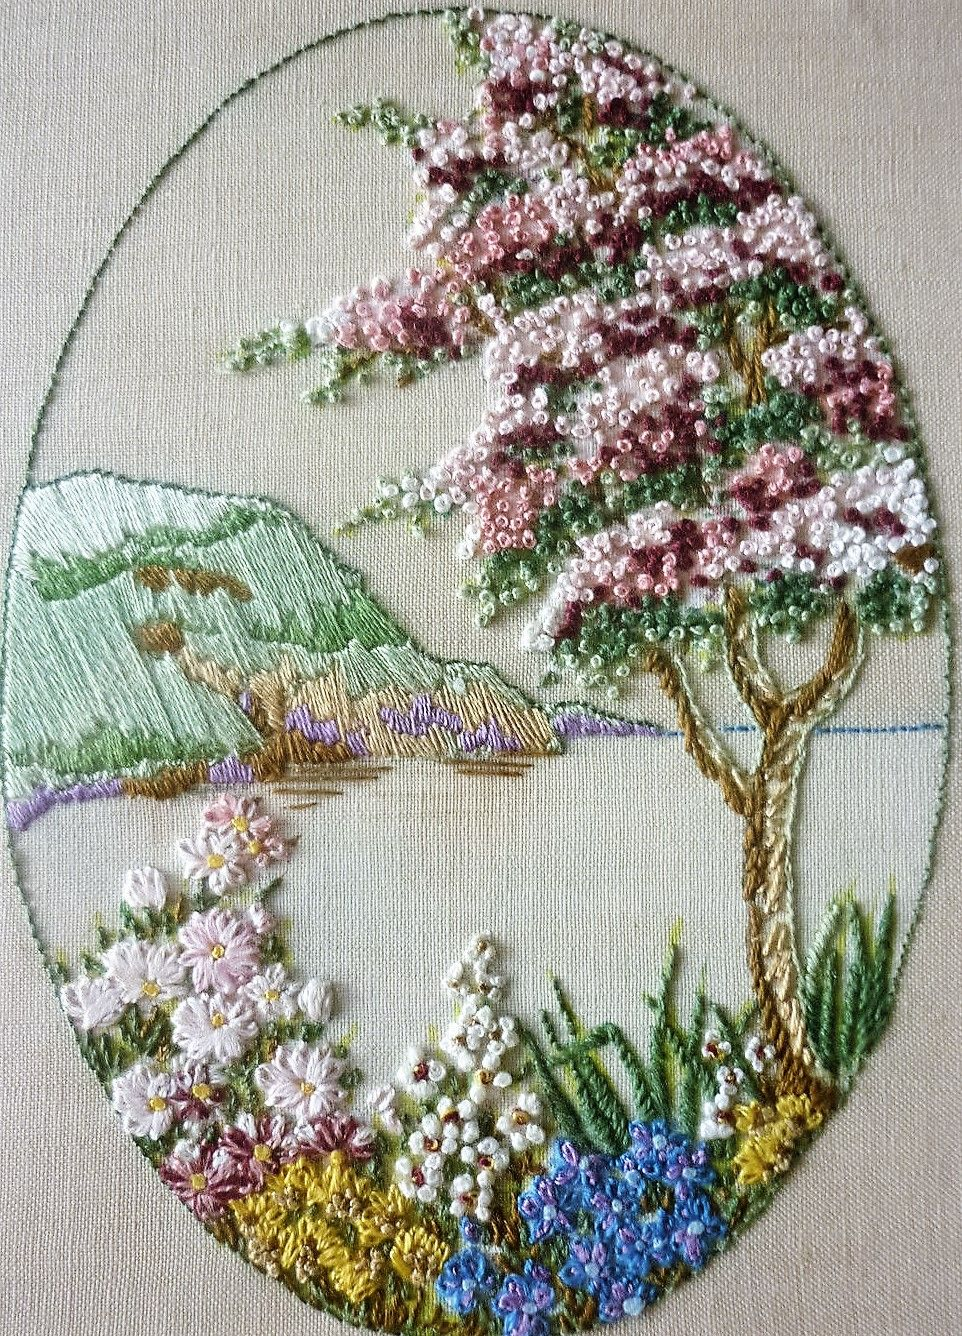 landscape done in embroidery exquisite embroidery and